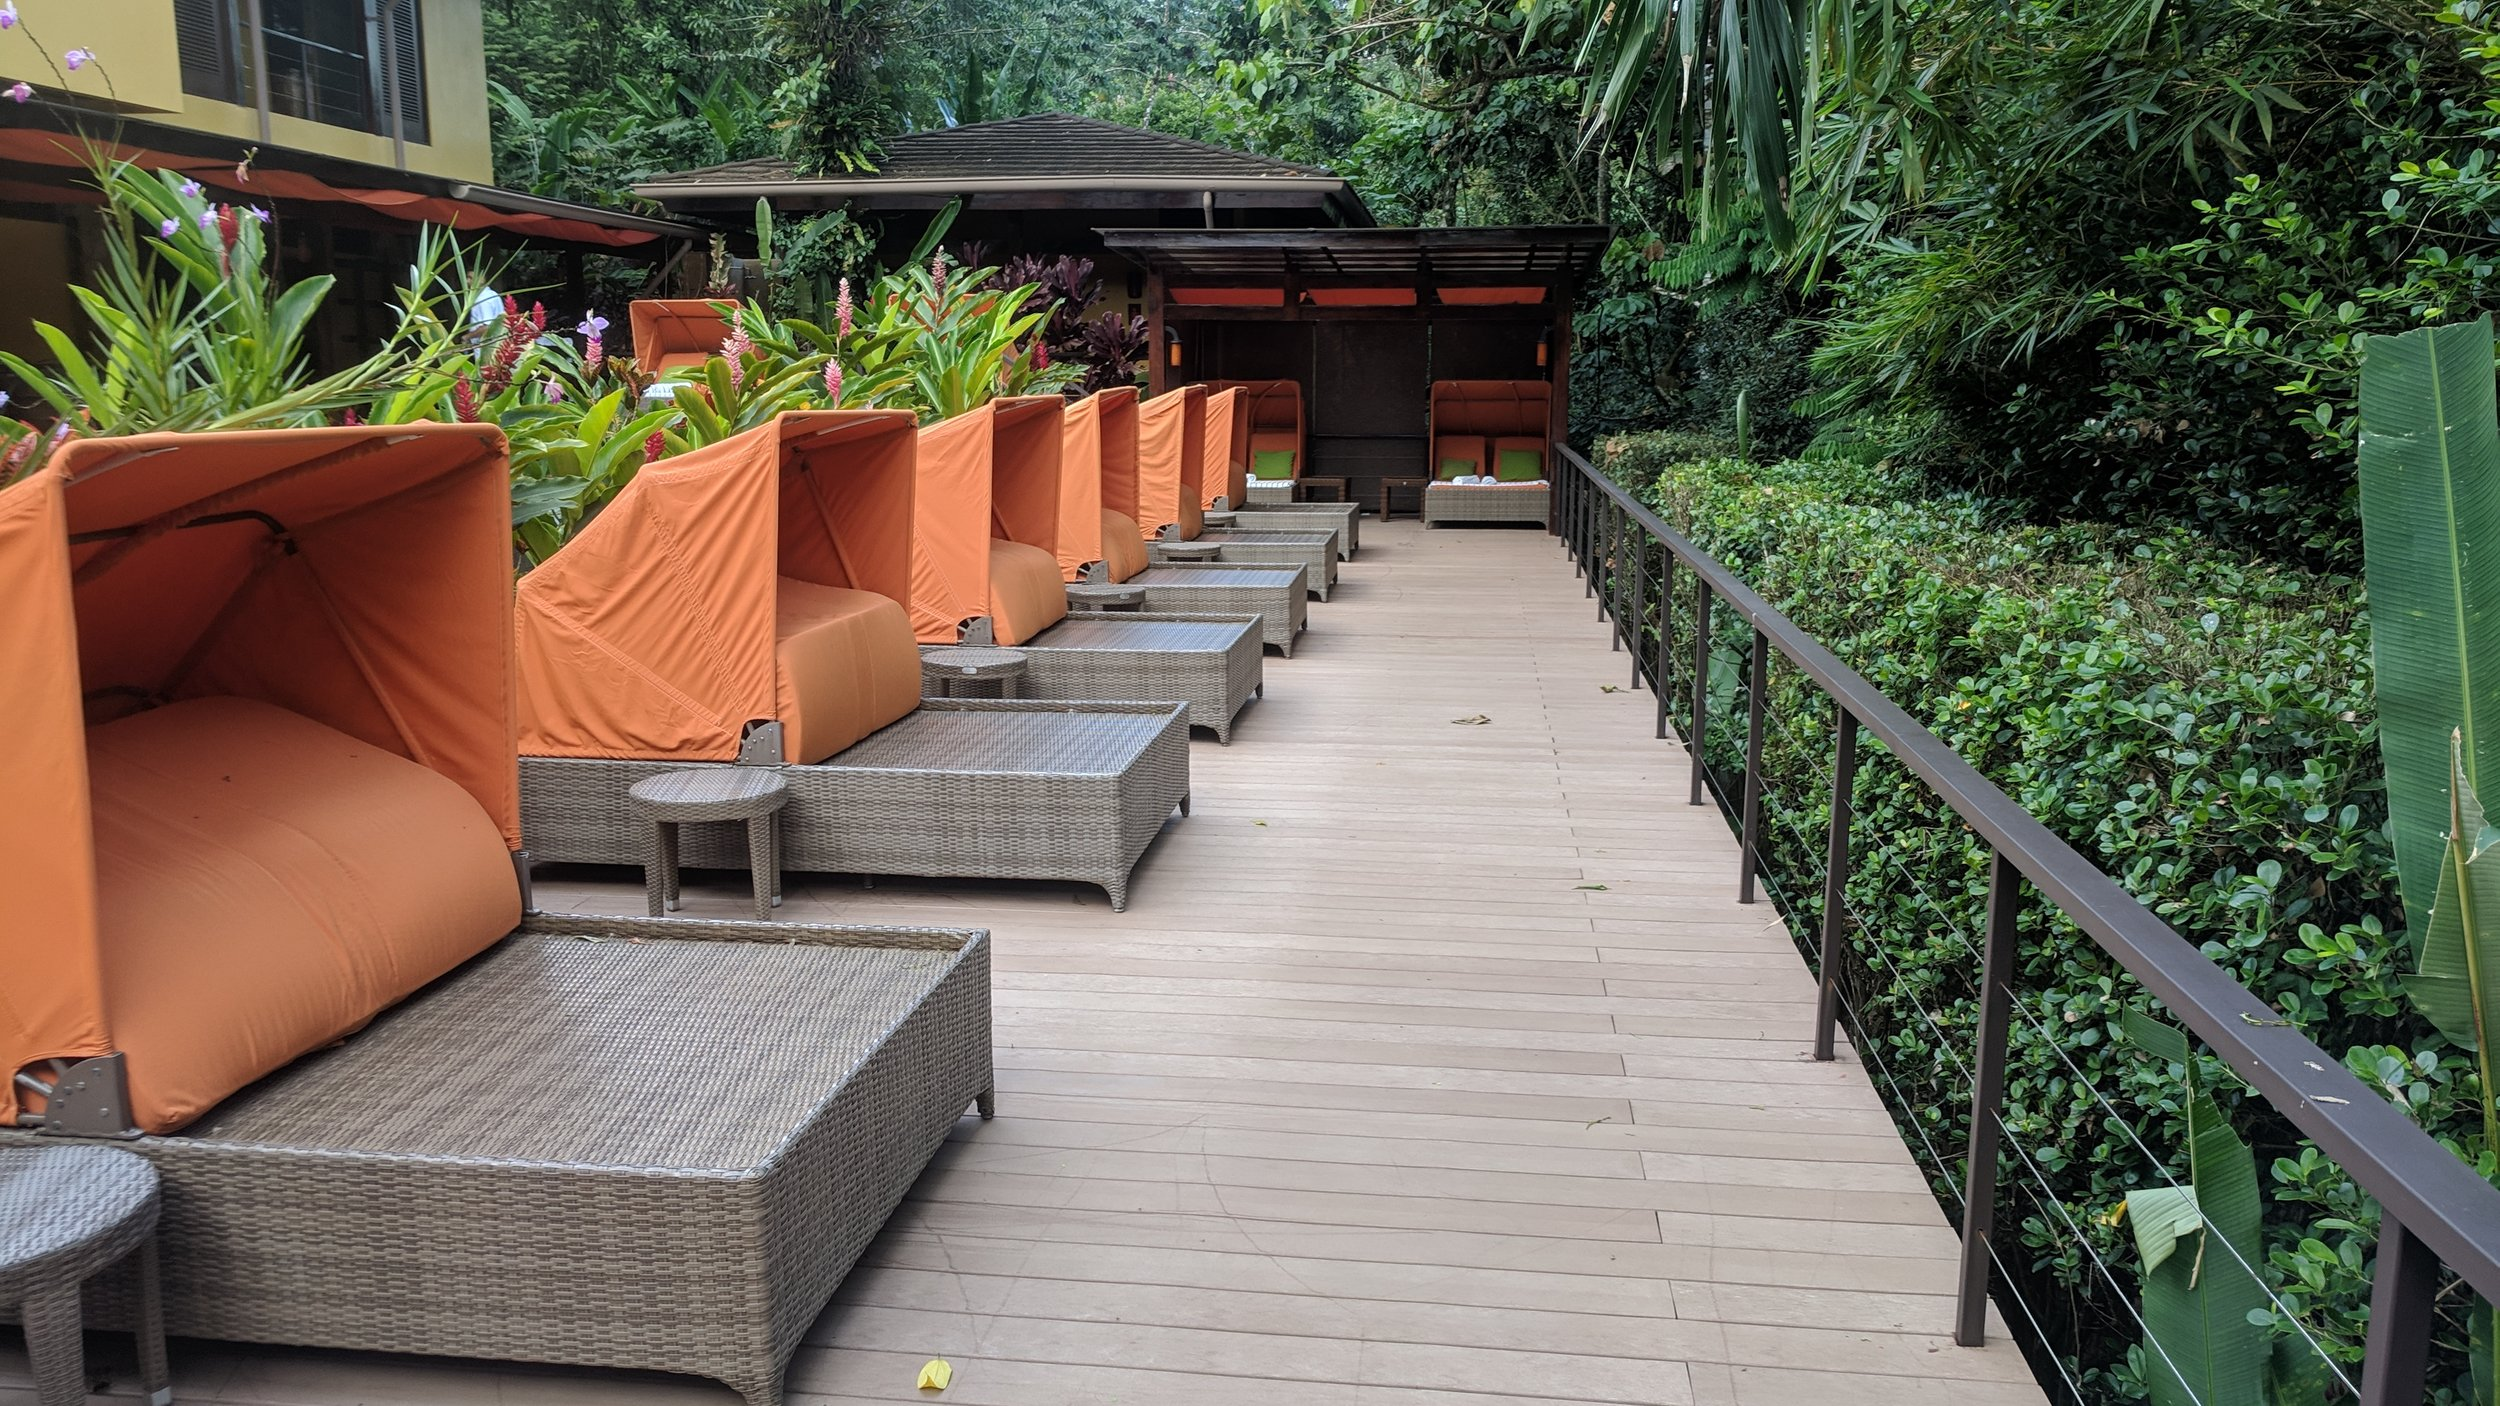 With plenty of space to lounge or read by the pool (which is just behind these in the photo).